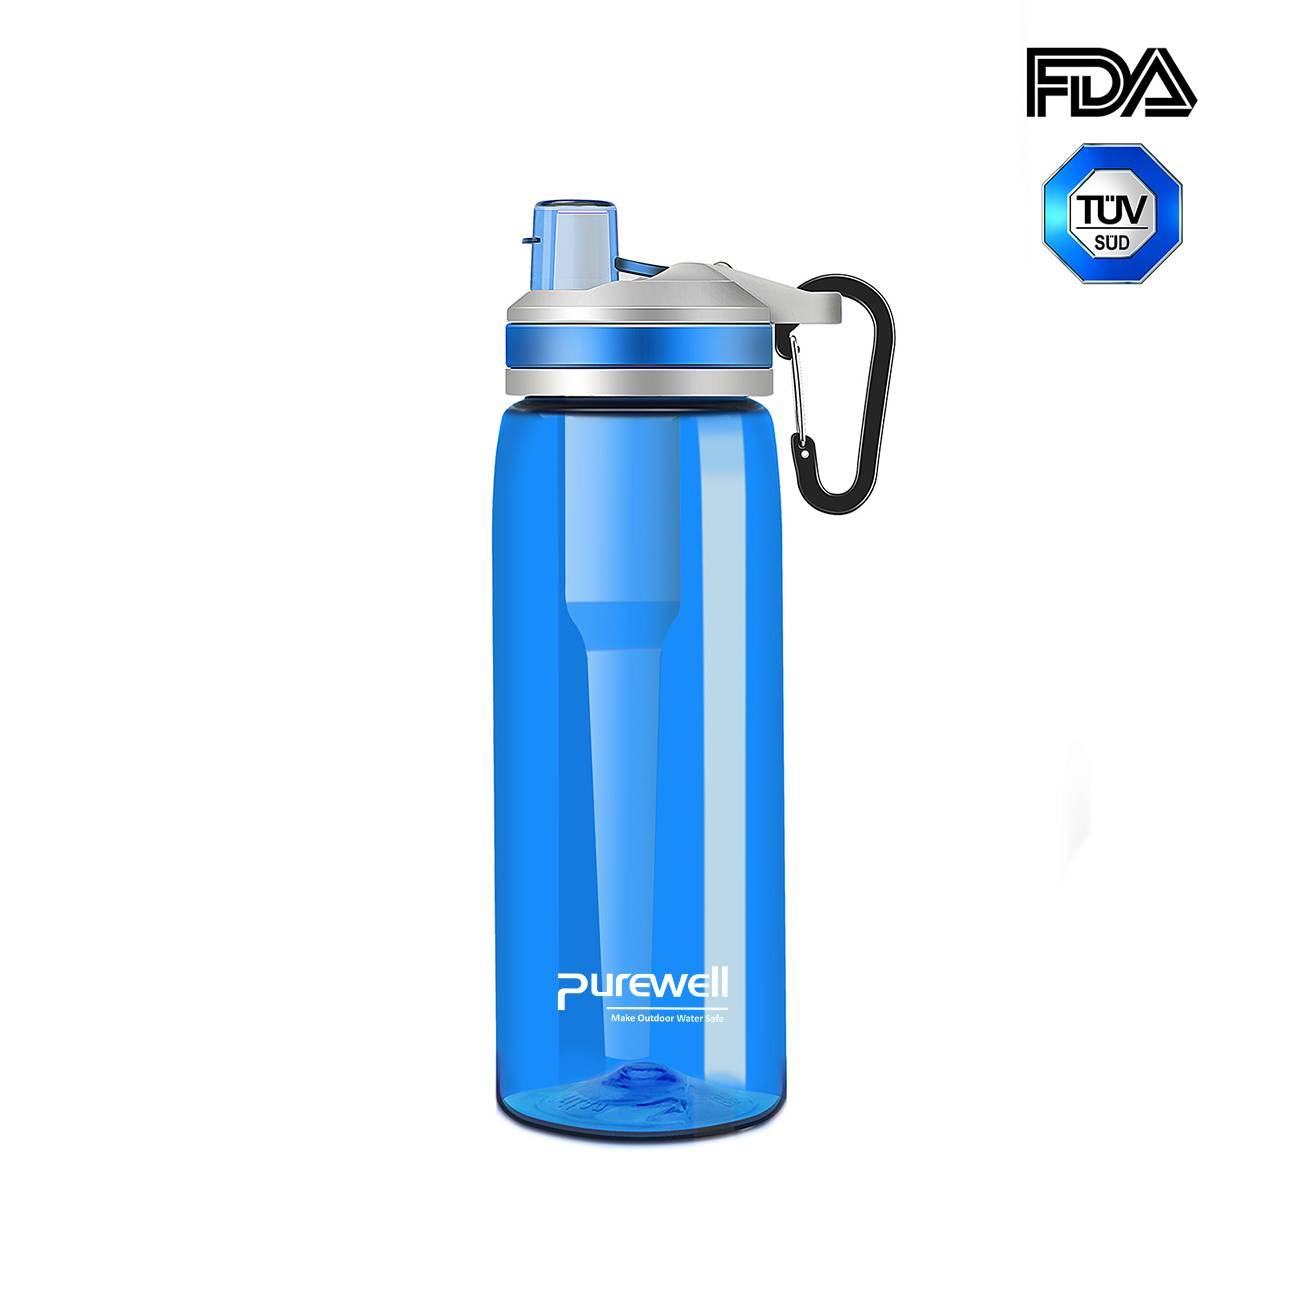 Water Filter Bottle with Activated Carbon Remove Chlorine, Bad Odor K8628